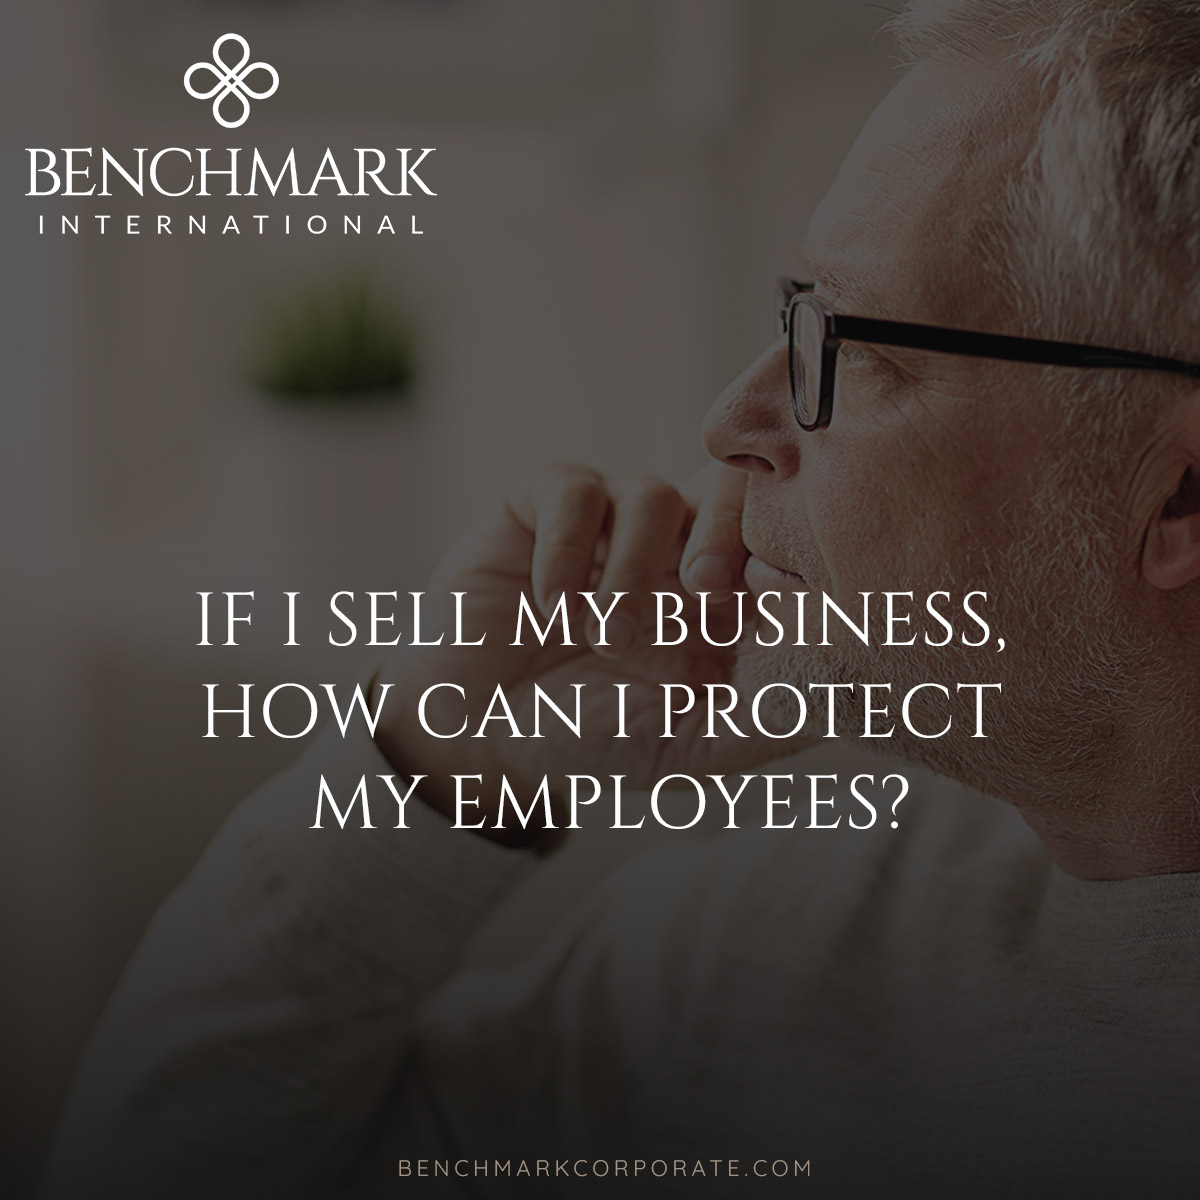 If_I_Sell_My_Business_Employees-Social